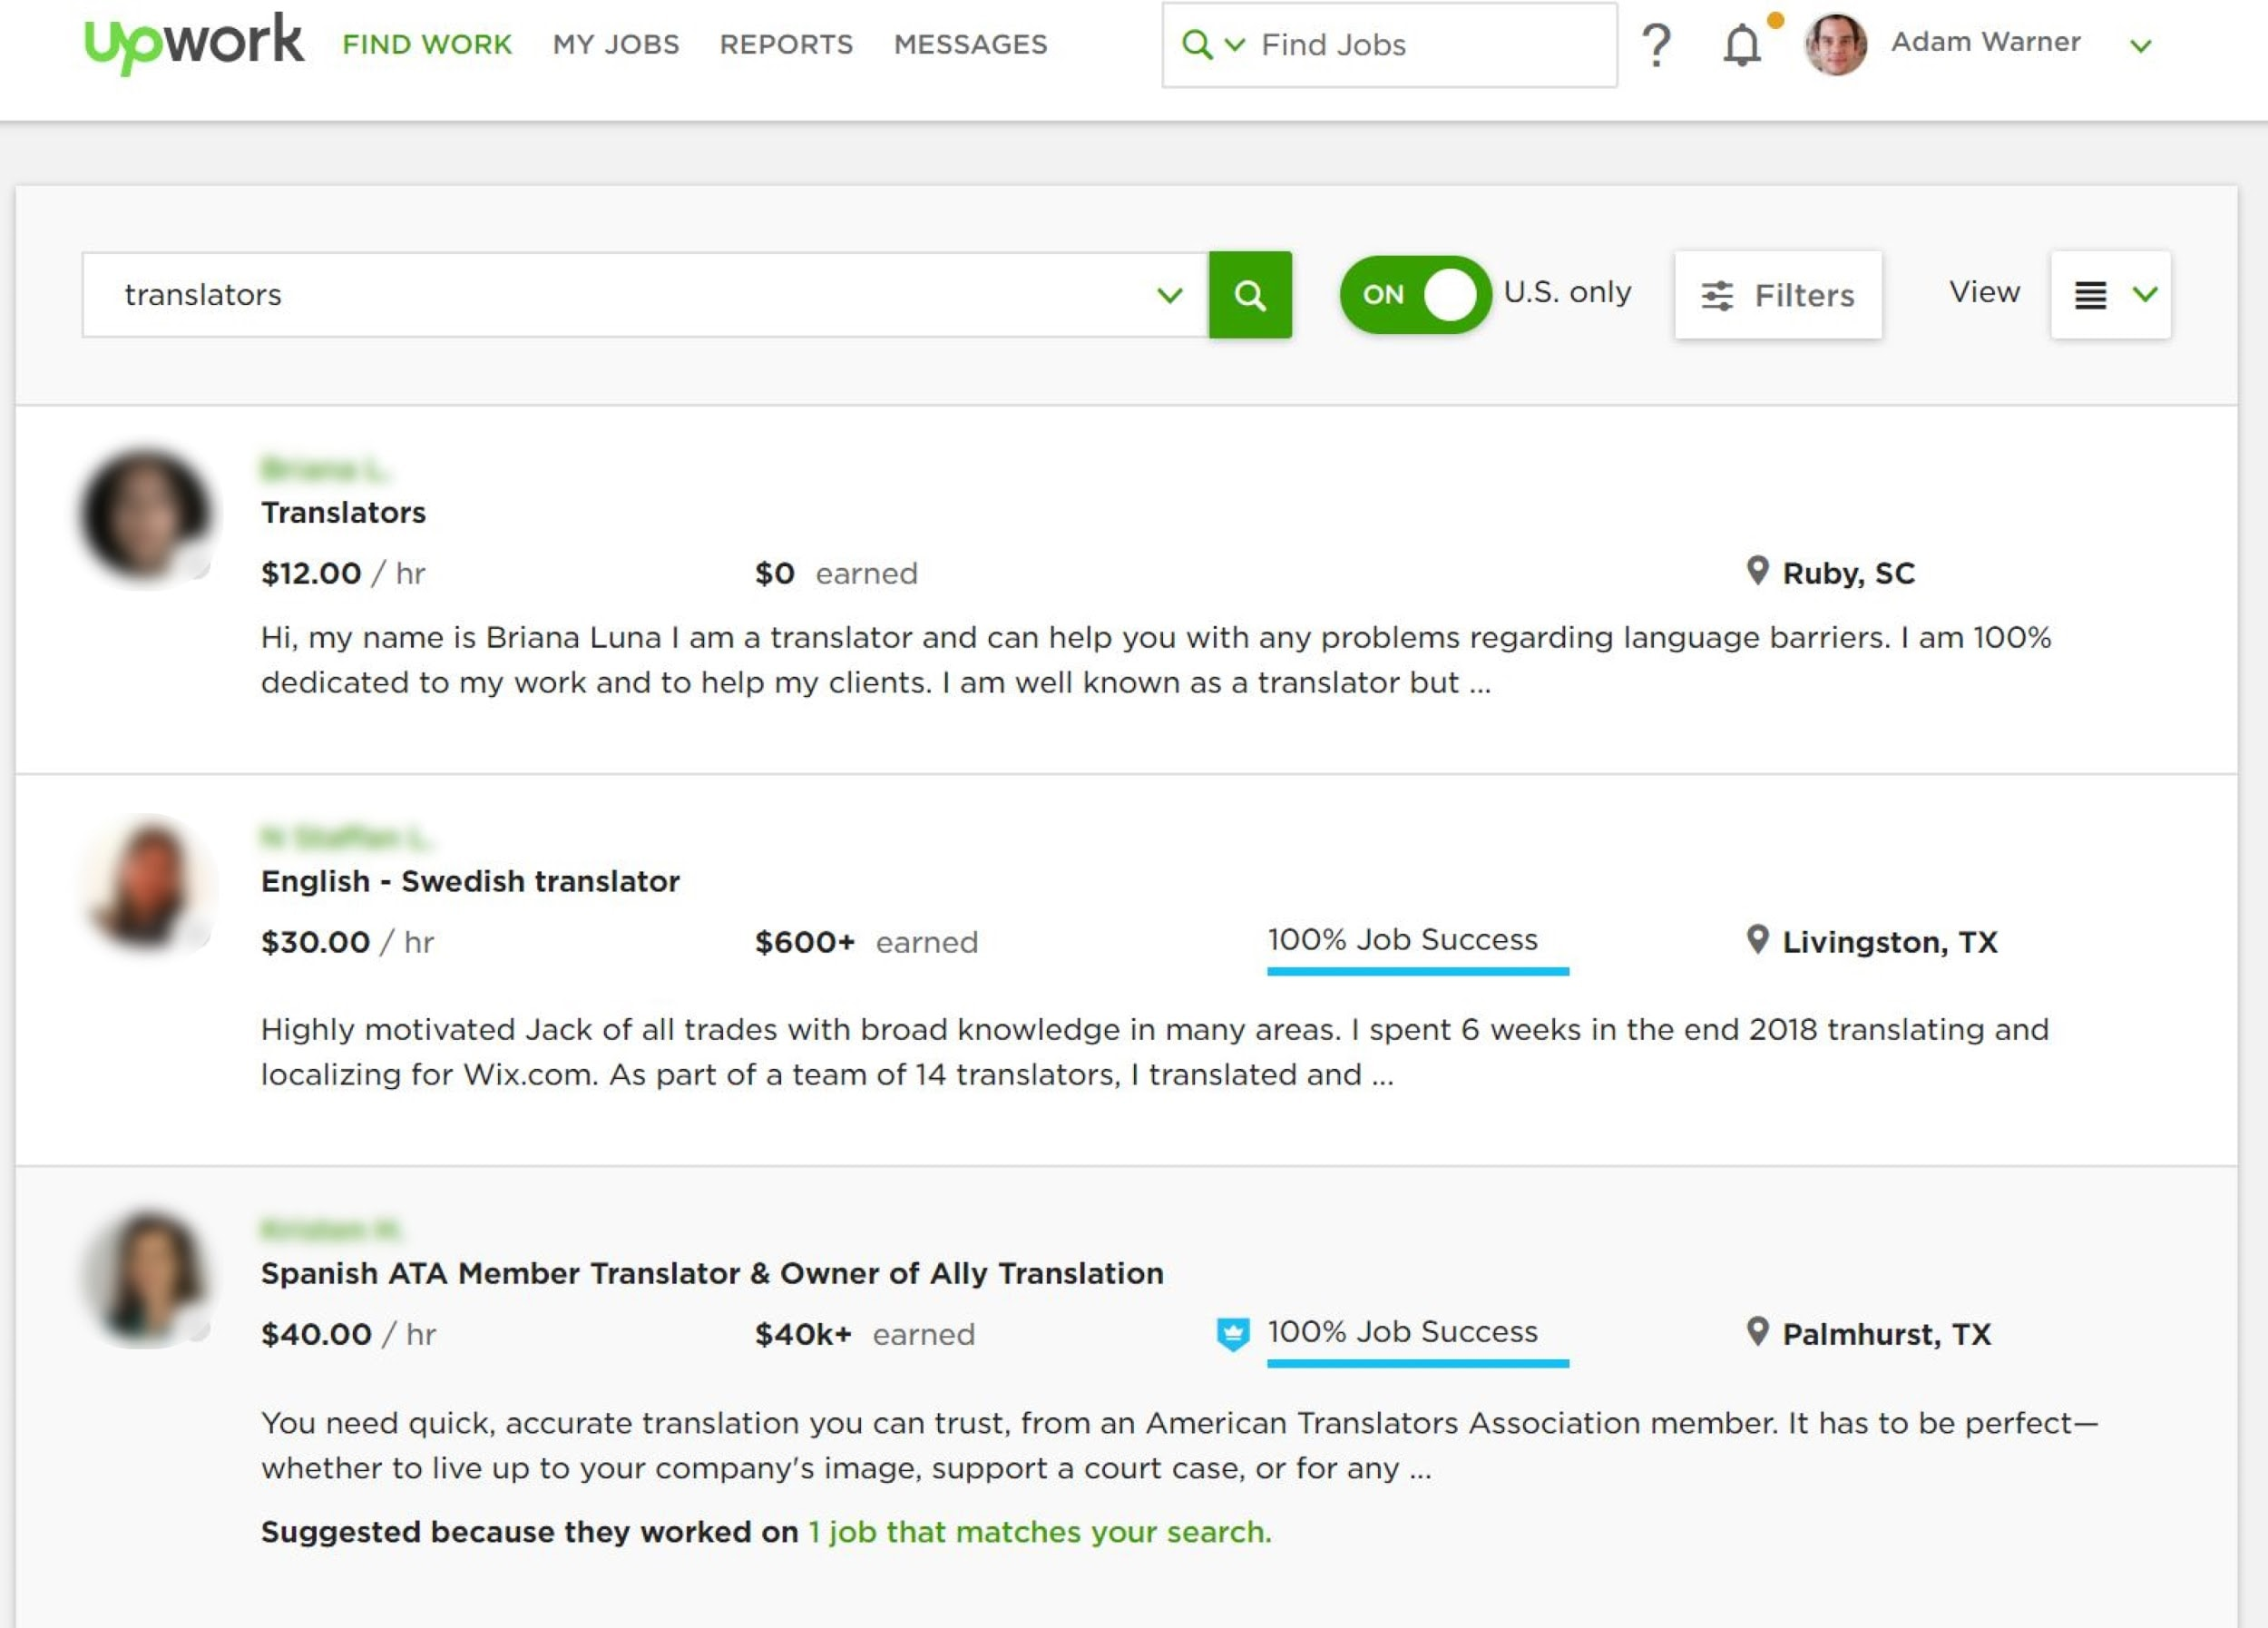 Upwork translation job